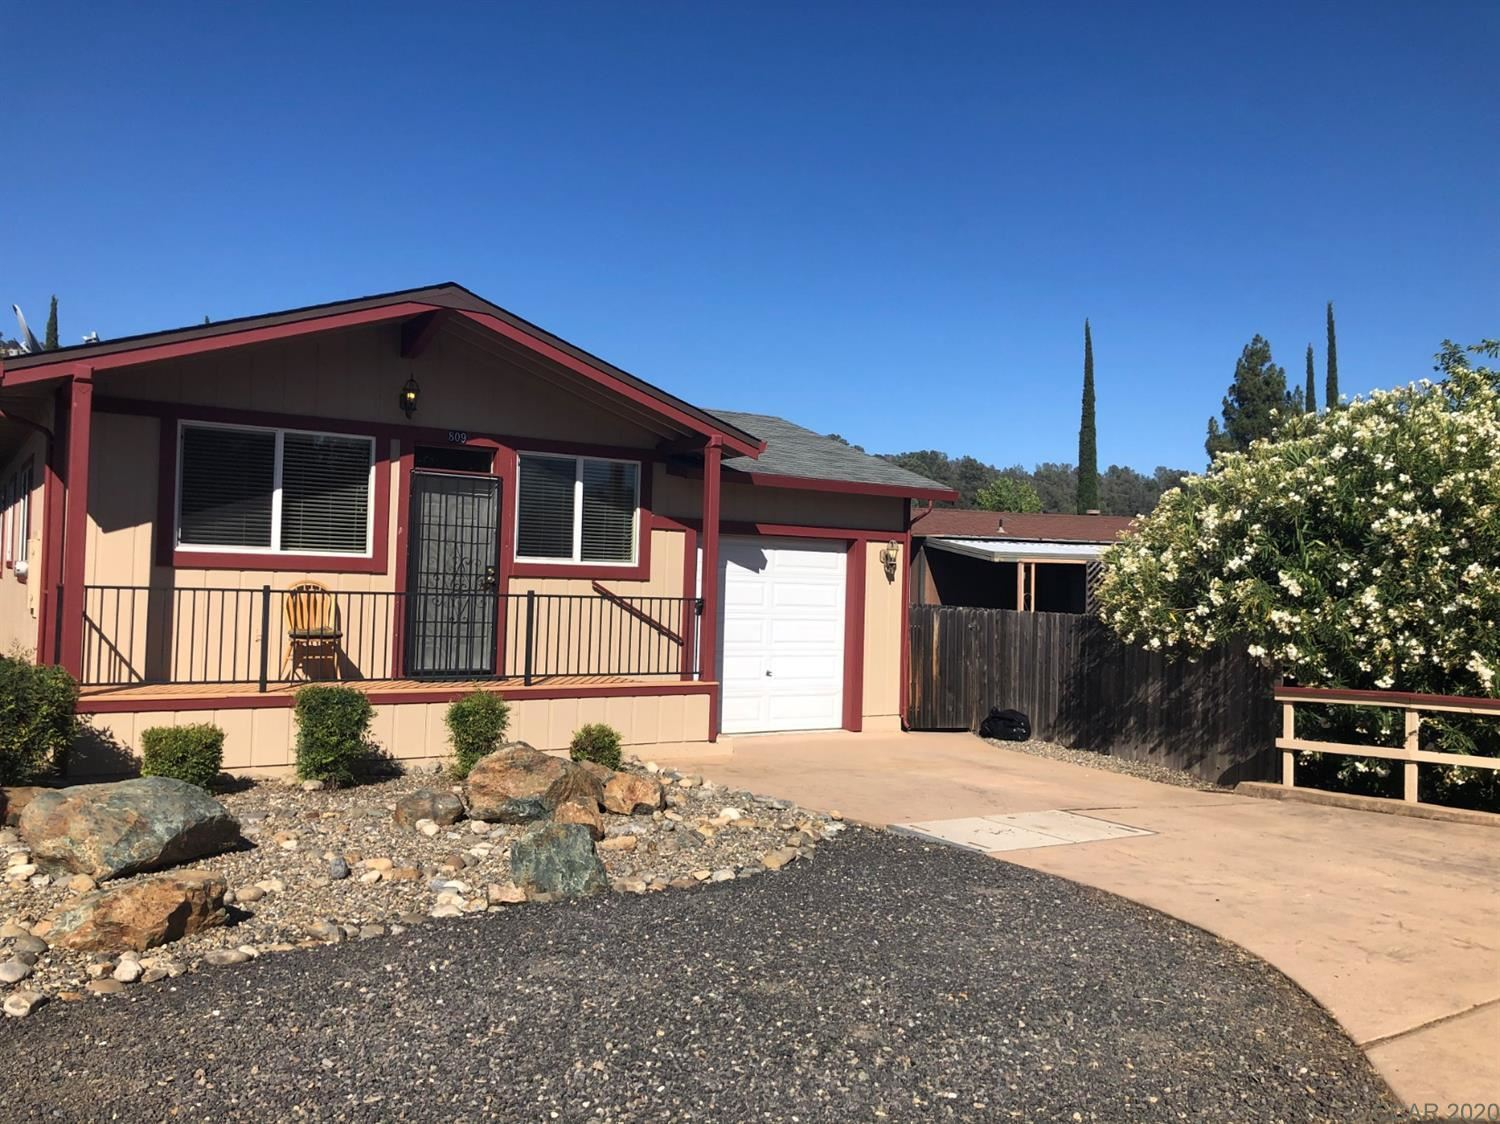 809 Feather Drive, Copperopolis, CA 95228 - MLS#: 2001540